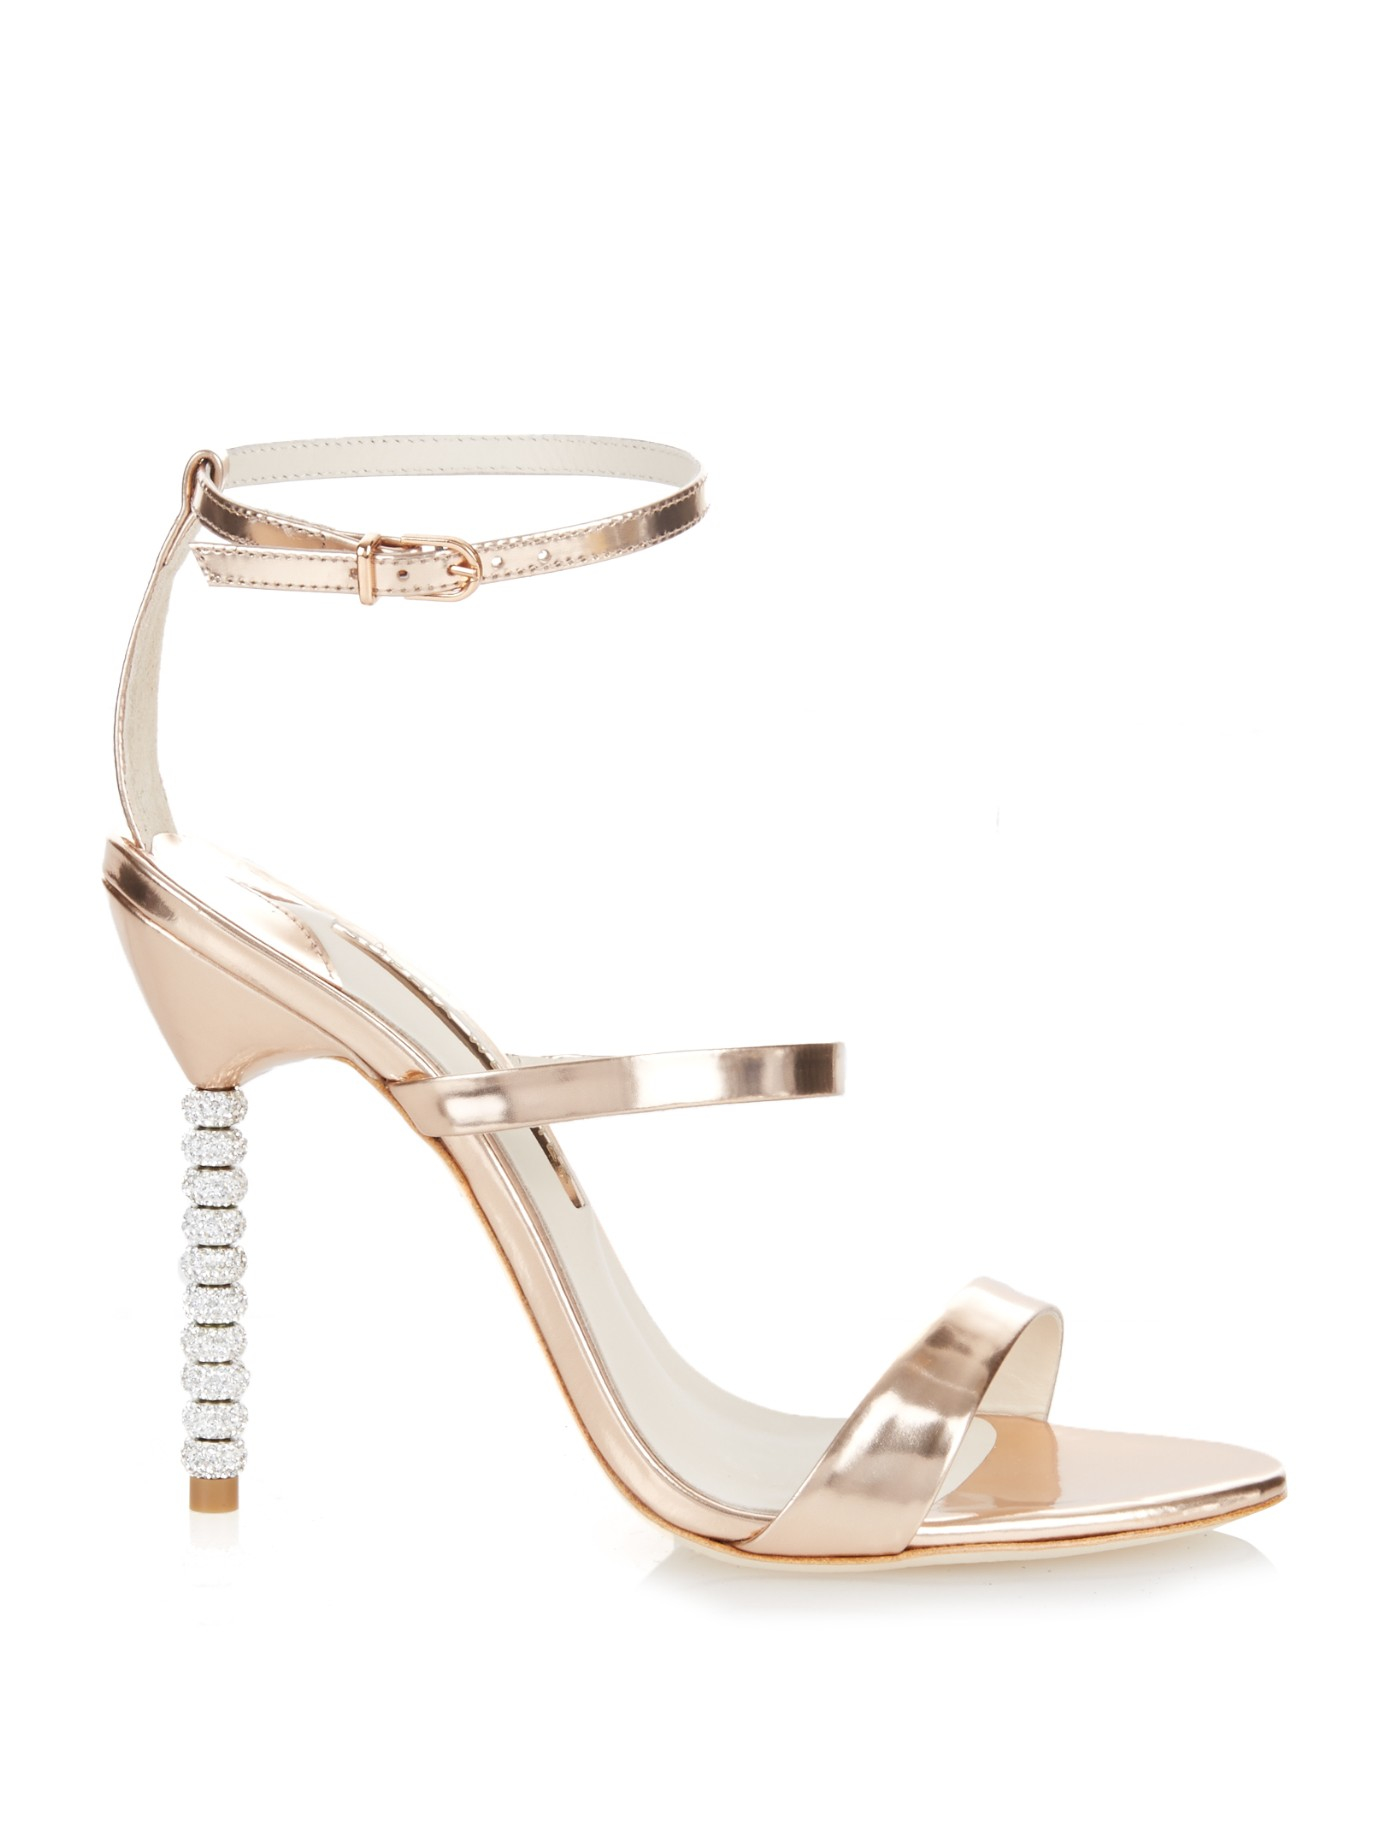 Outlet Best Wholesale Rosalind Crystal-embellished Glittered Canvas Sandals - Metallic Sophia Webster Cheap Limited Edition Factory Outlet Cheap Price Perfect ufxpcBBVP